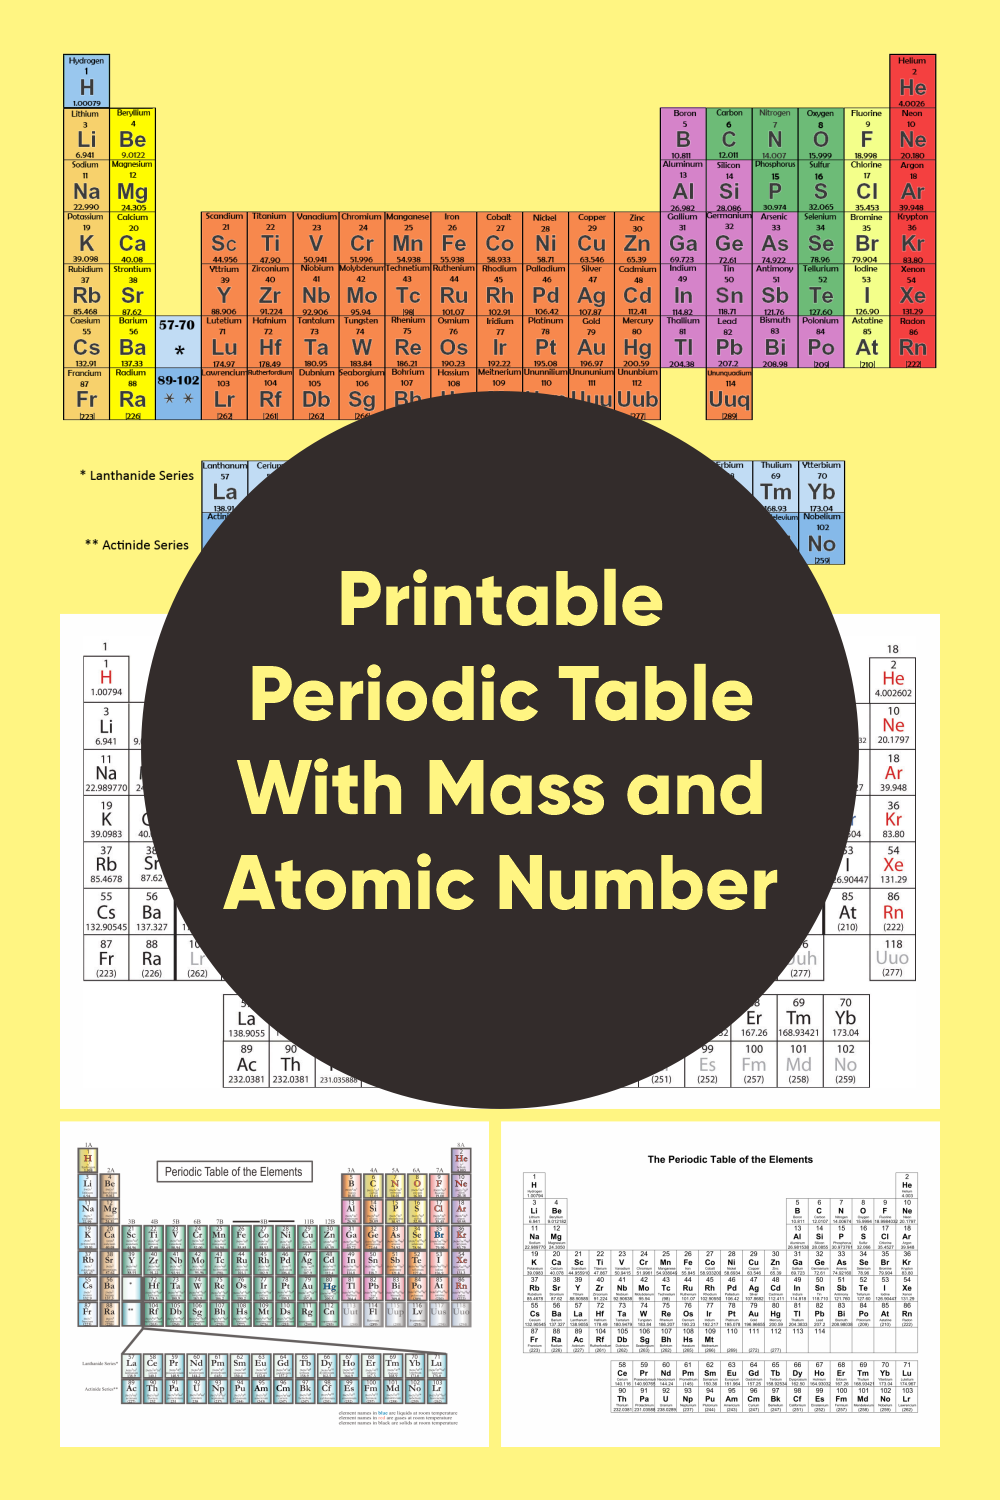 Printable Periodic Table With Mass And Atomic Number